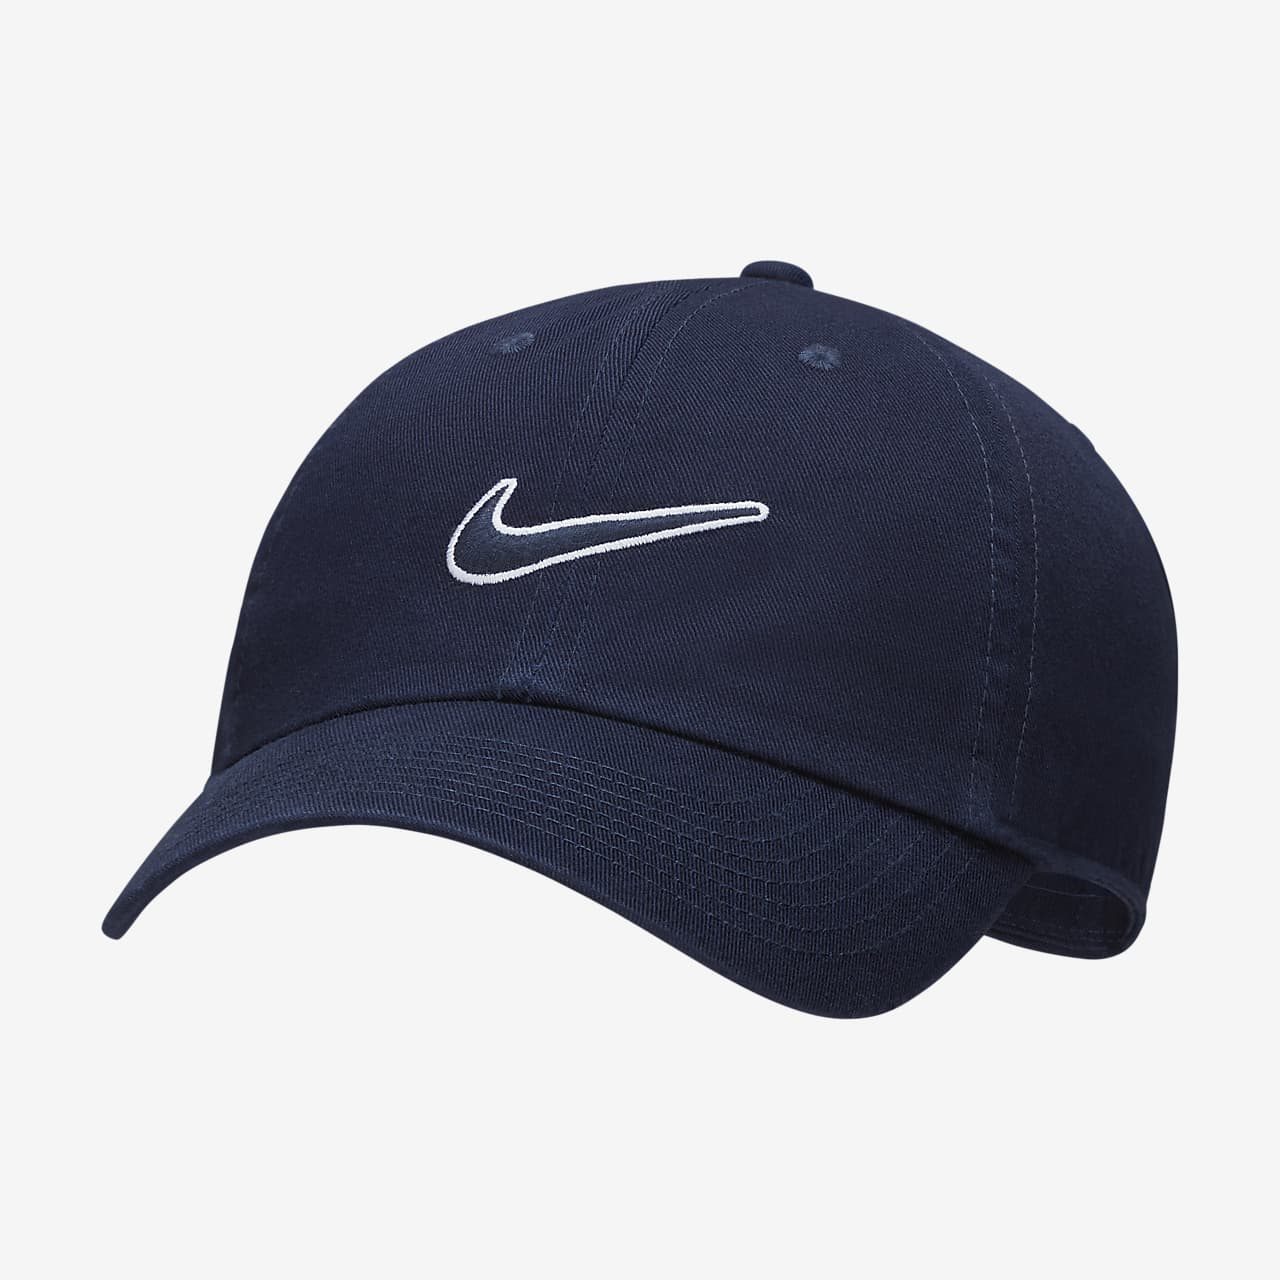 Casquette Réglable 86 Heritage Swoosh Essential Nike WYDIHE29